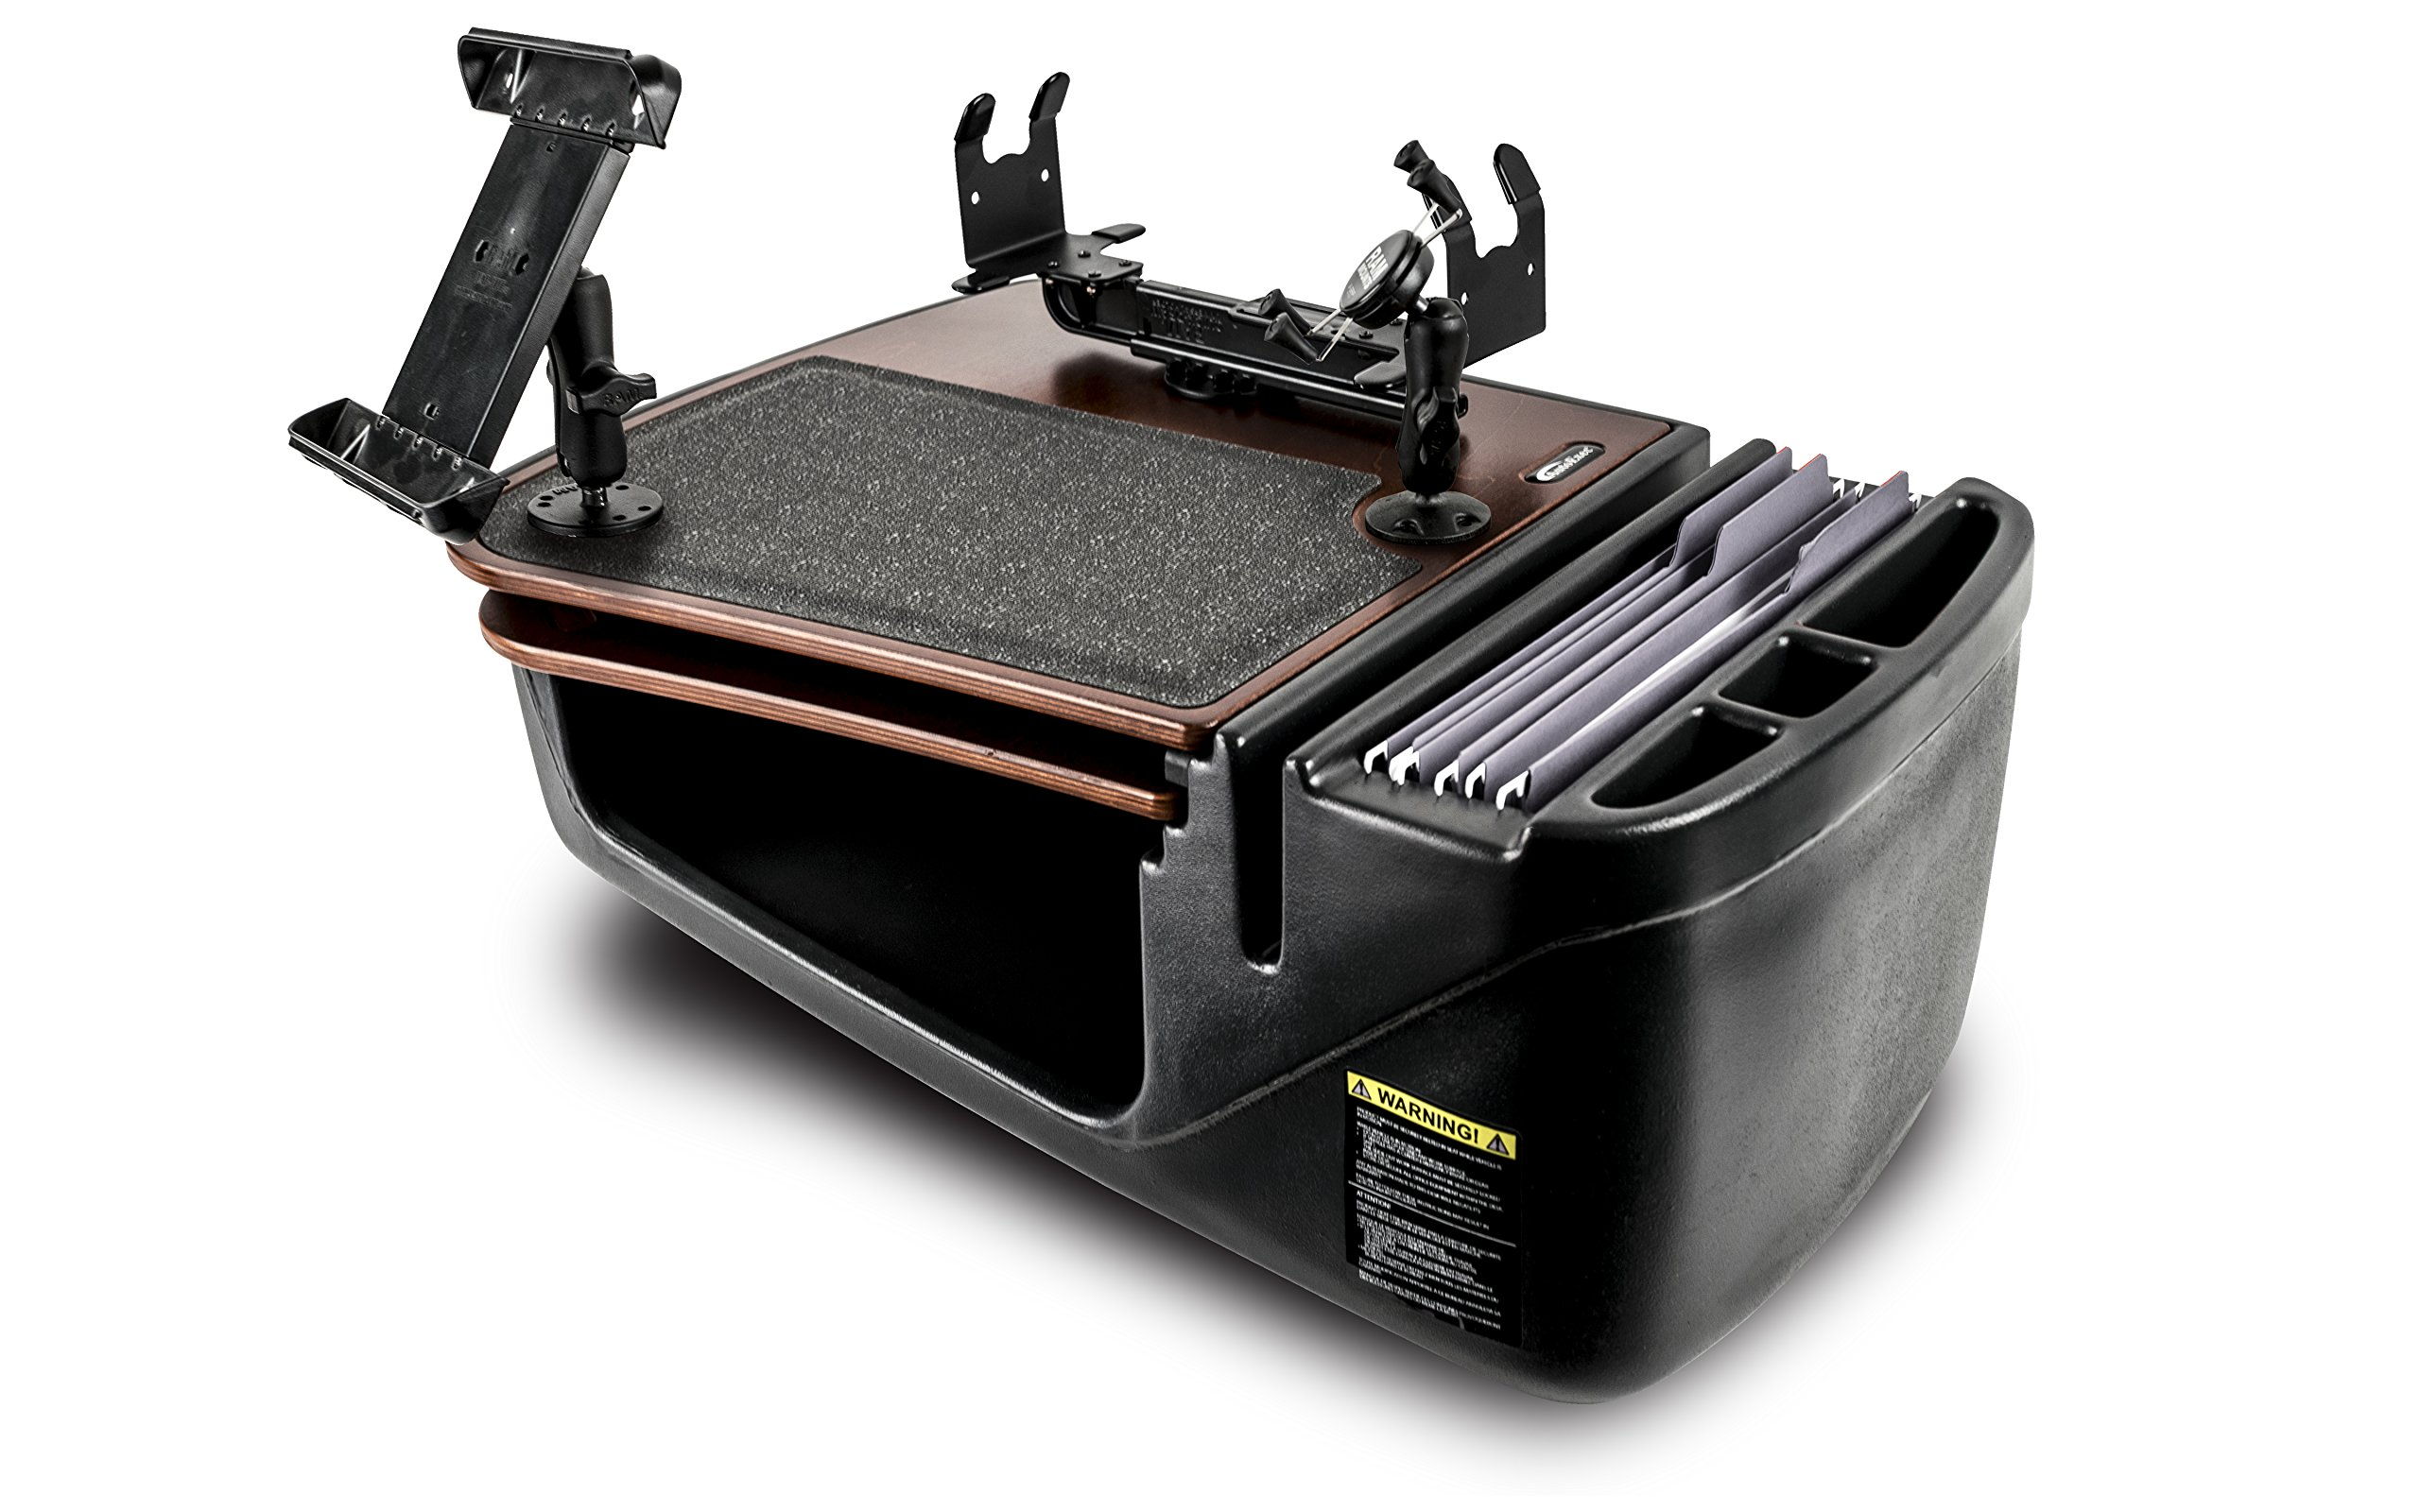 AutoExec AUE19300 GripMaster Car Desk (Mahogany Finish with Built-in Power Inverter, Printer Stand, X-Grip Phone Tablet Mount)